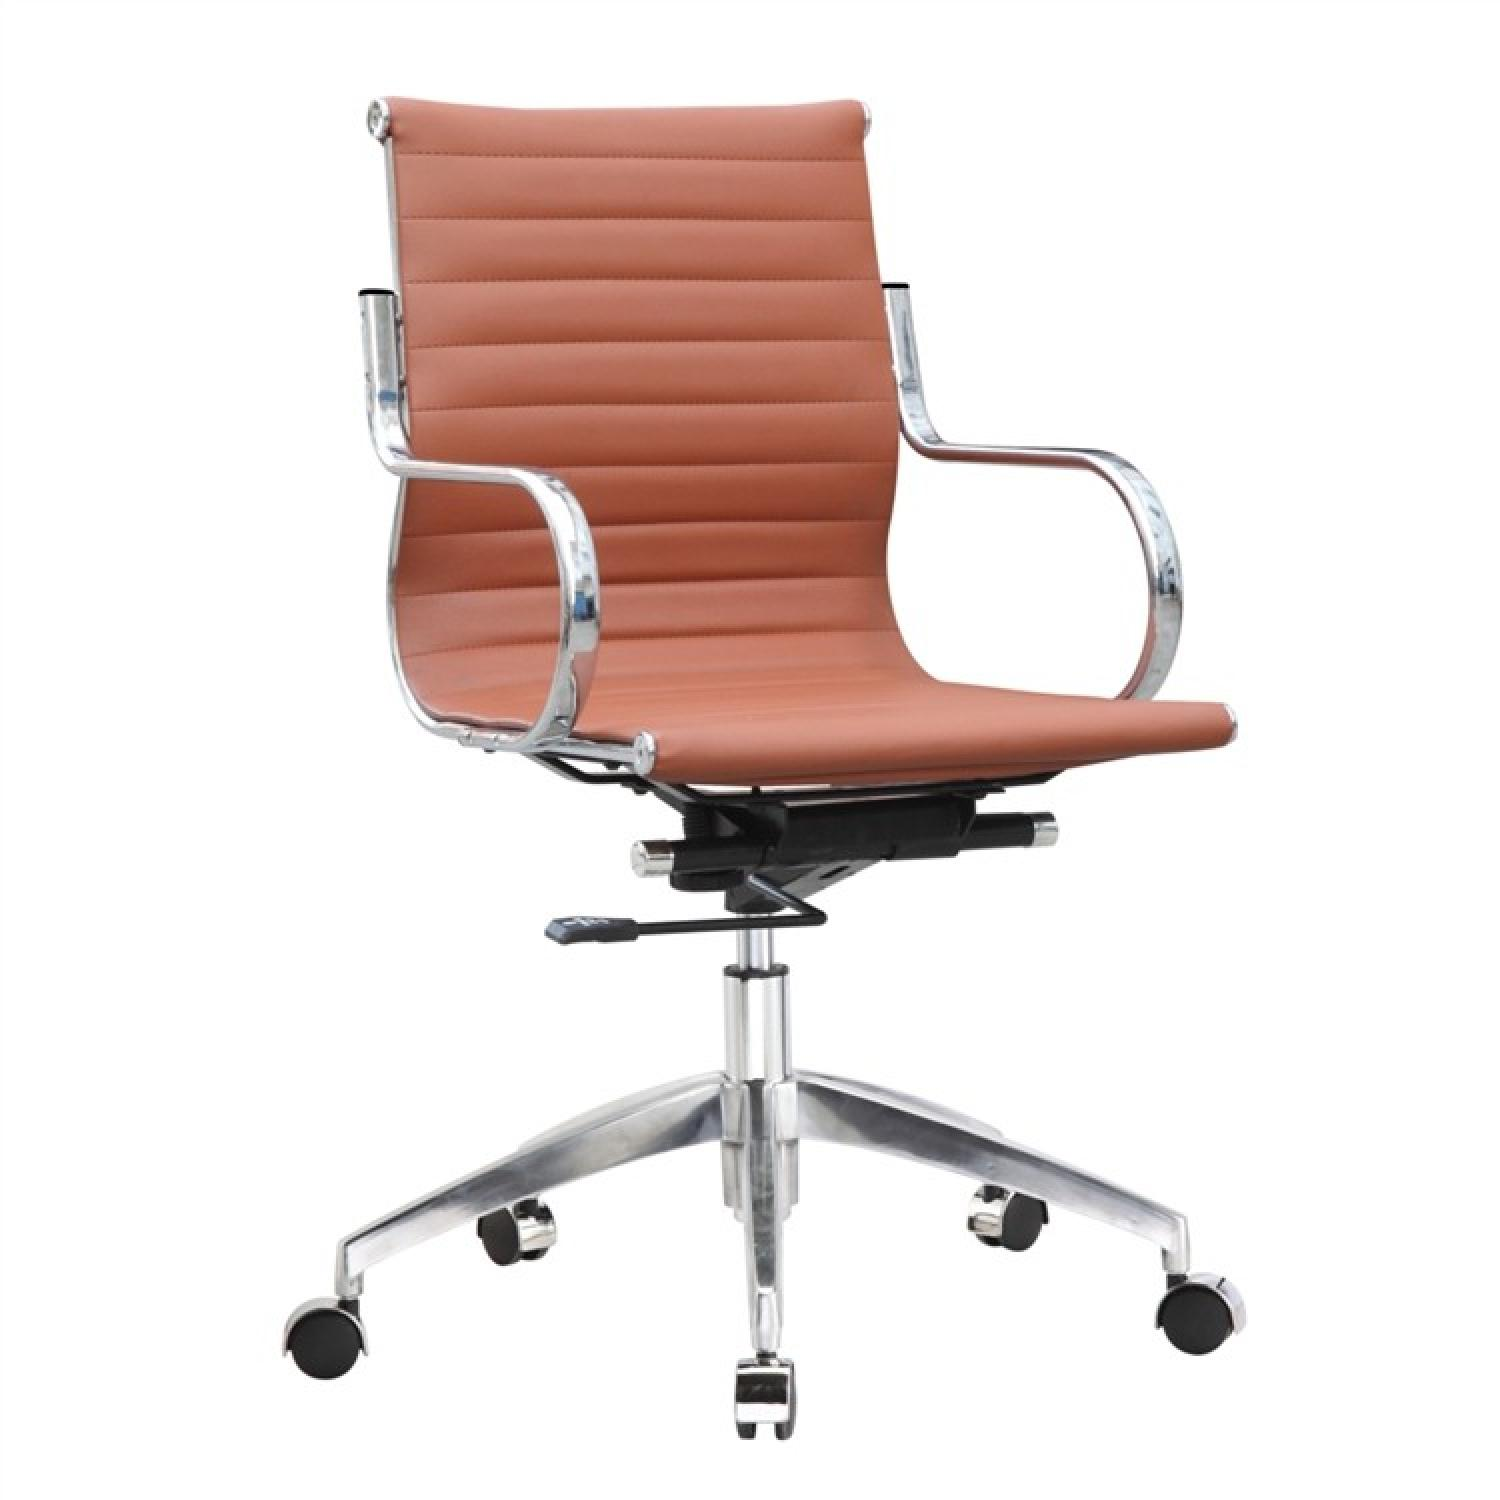 Modern Mid-Back Office Chair in Light Brown Leatherette w/ S